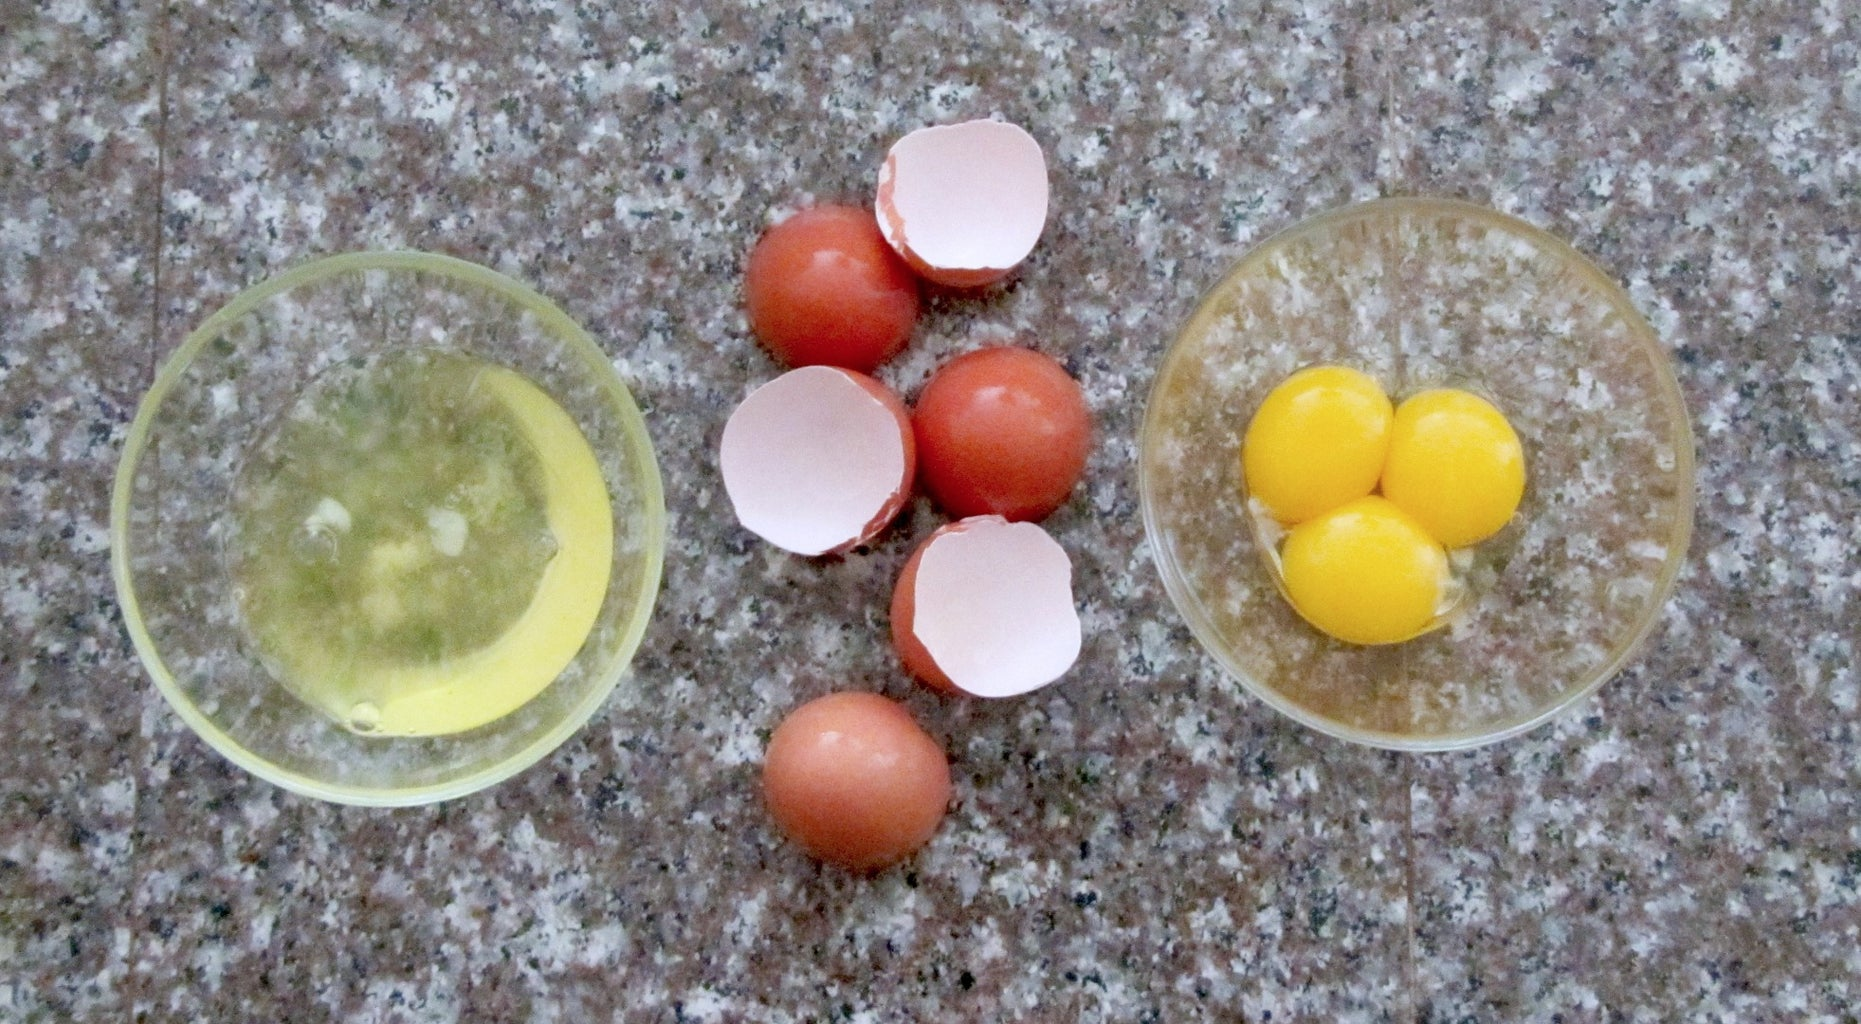 Separate Your Egg Yolks